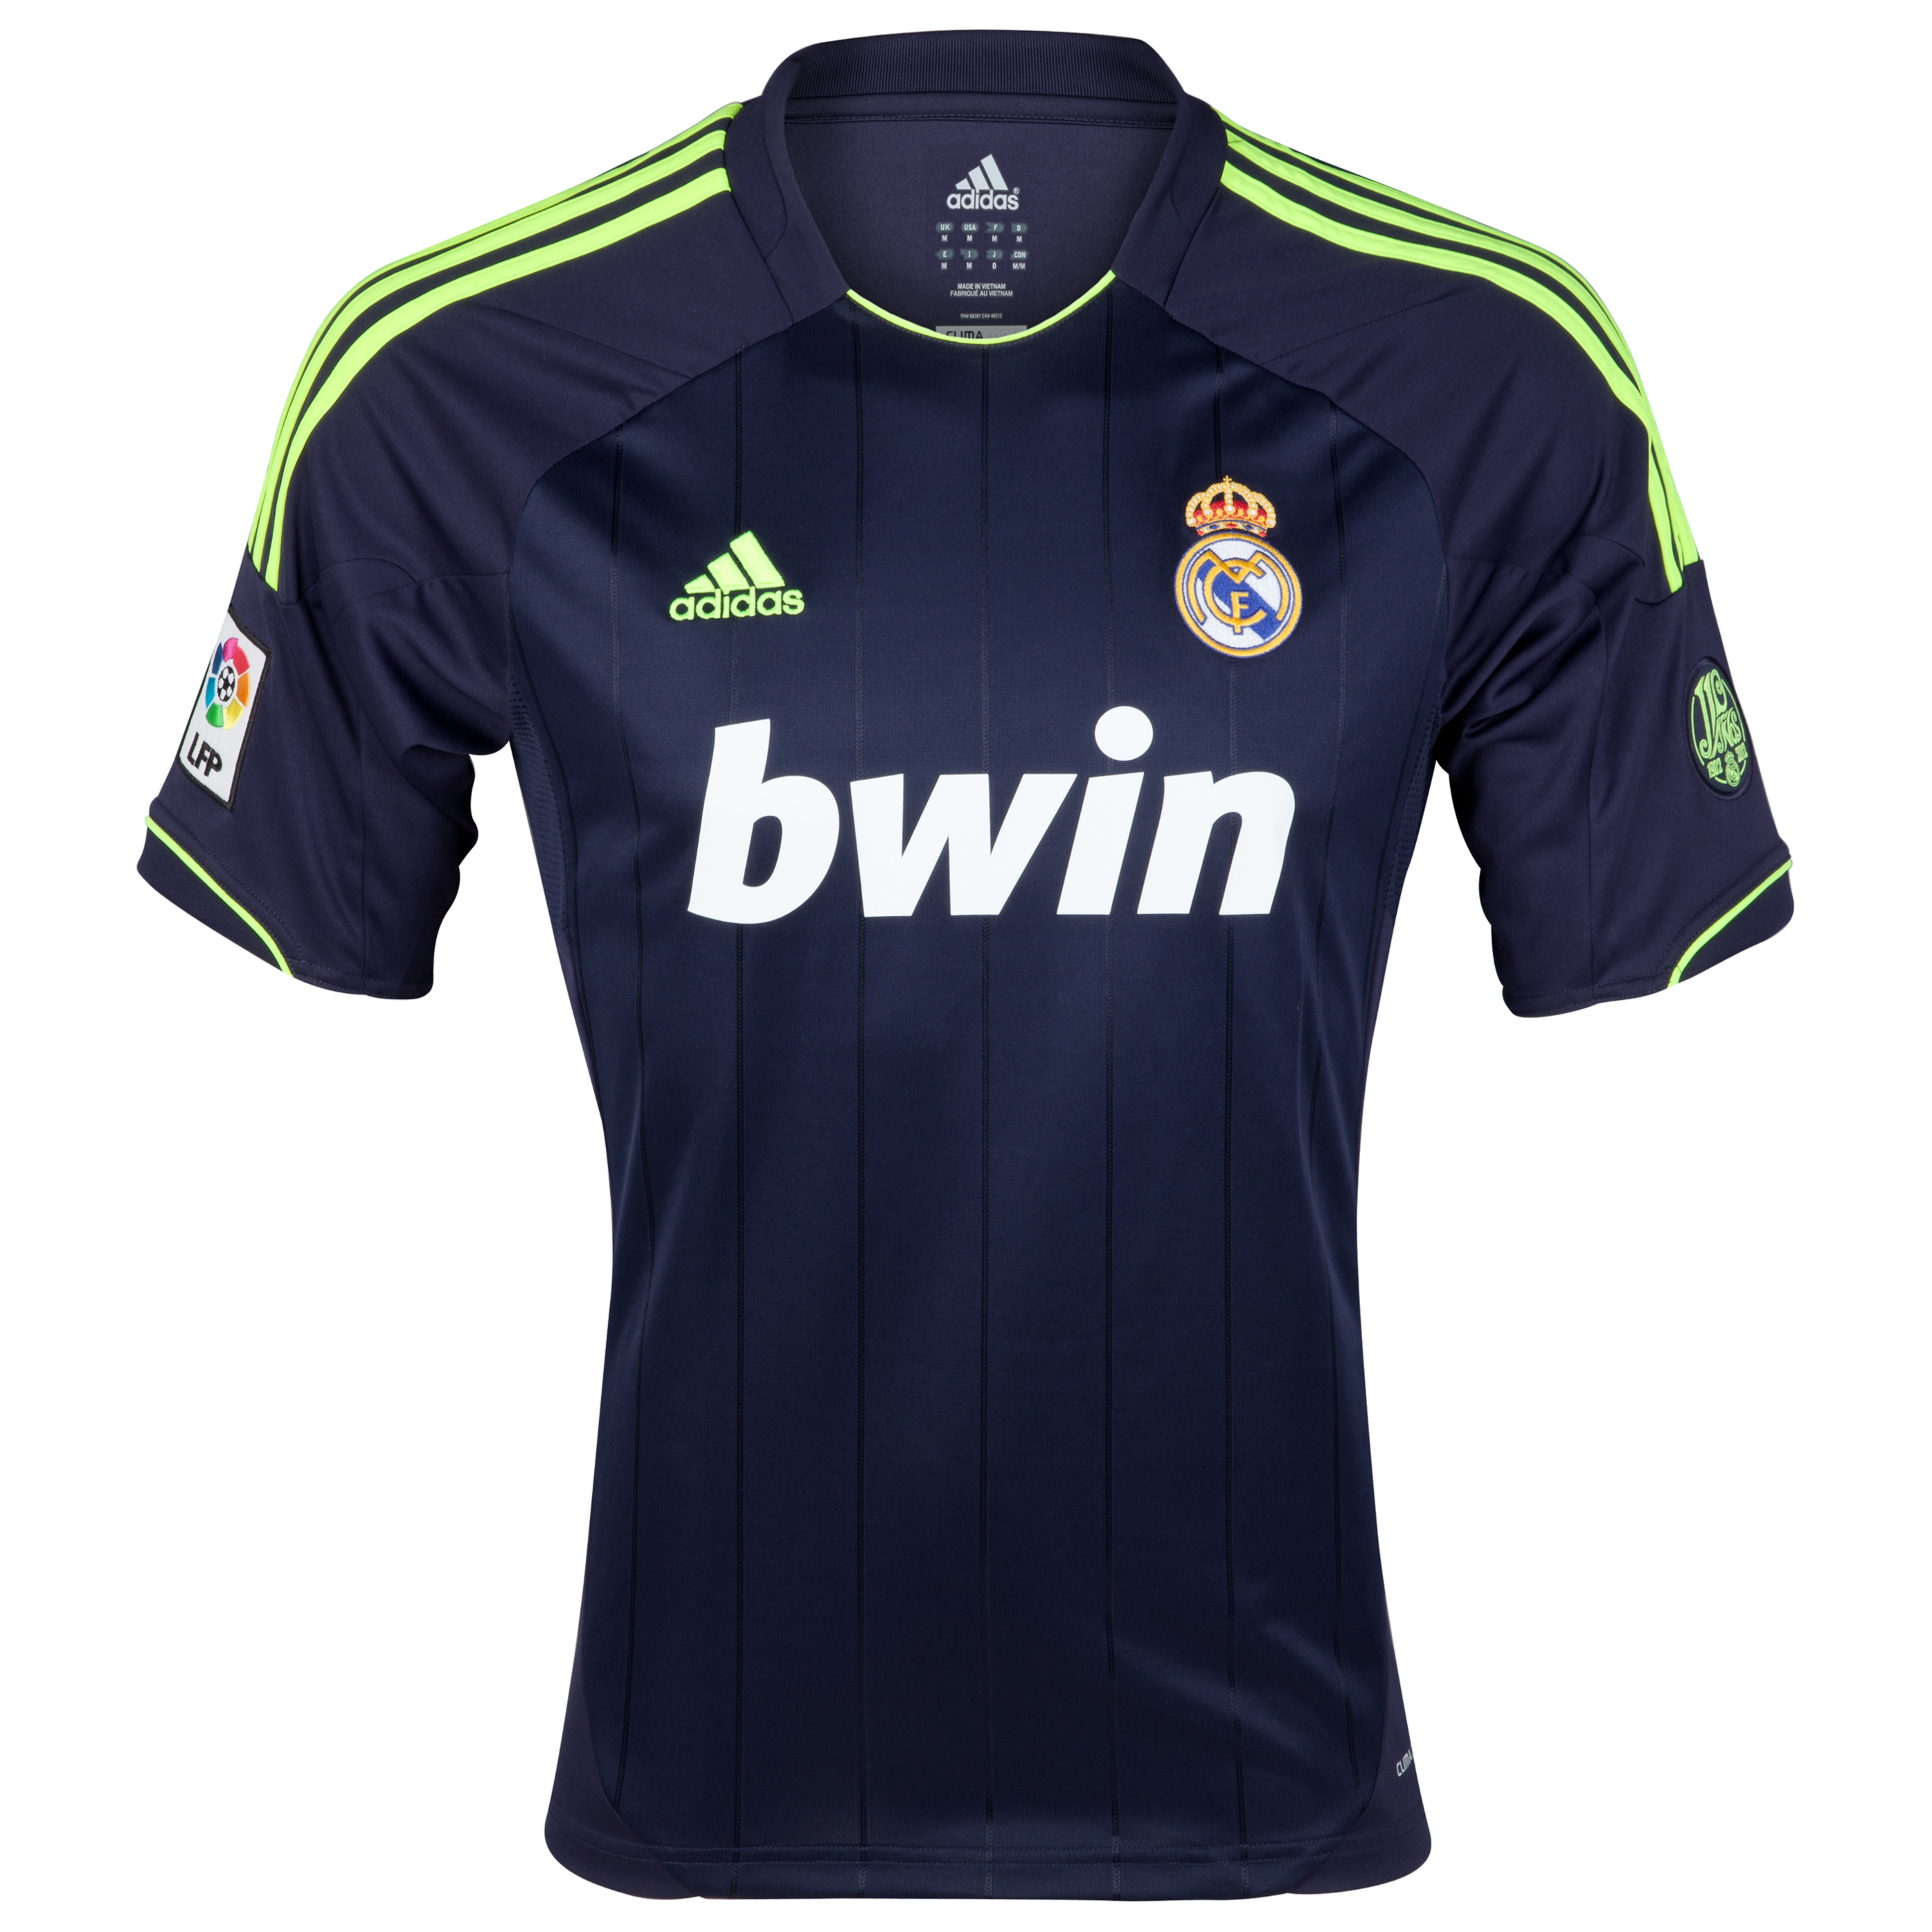 Real Madrid Away Shirt 2012/13